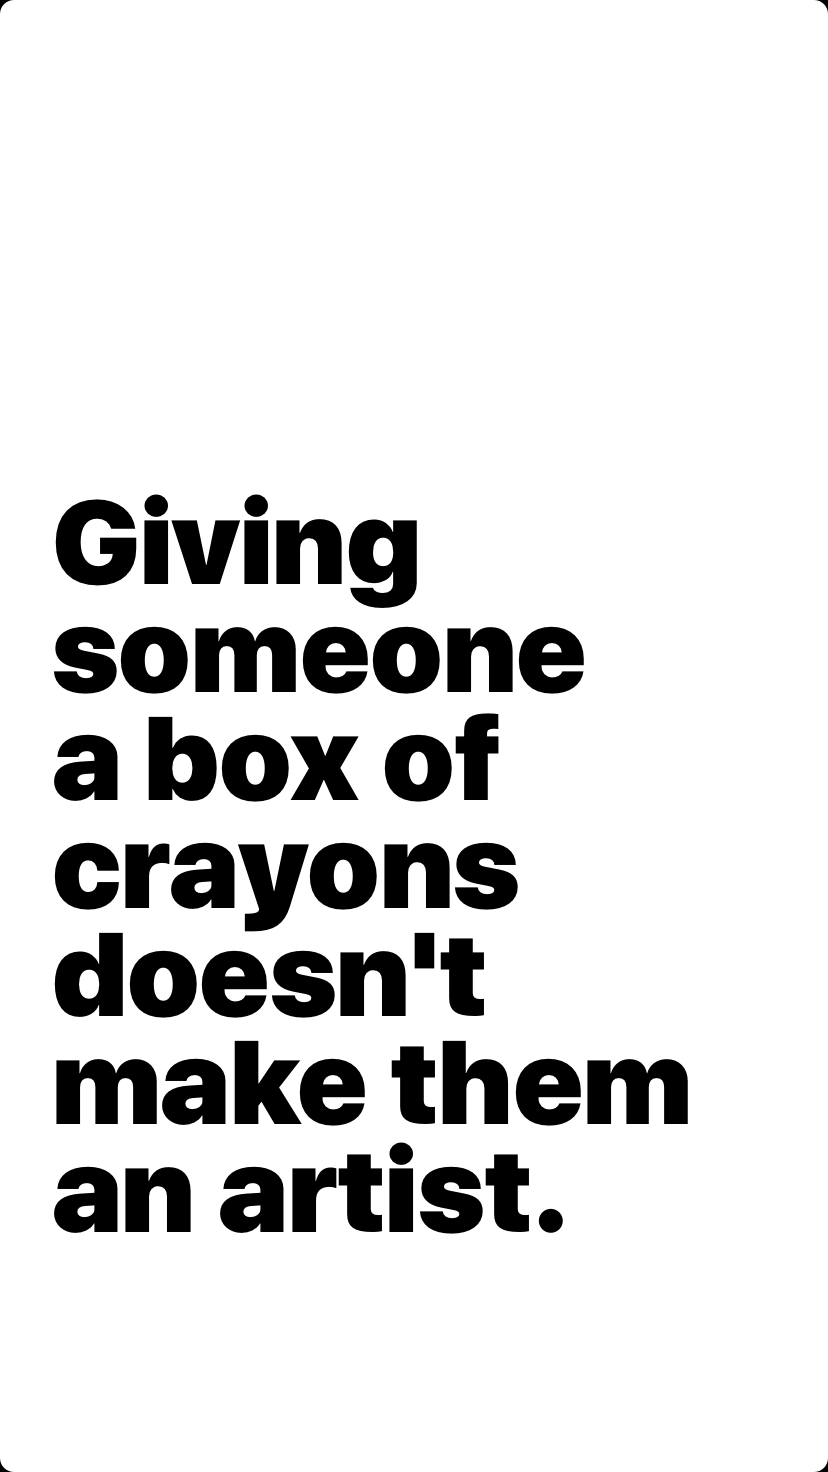 Giving someone a box of crayons doesn't make them an artist.